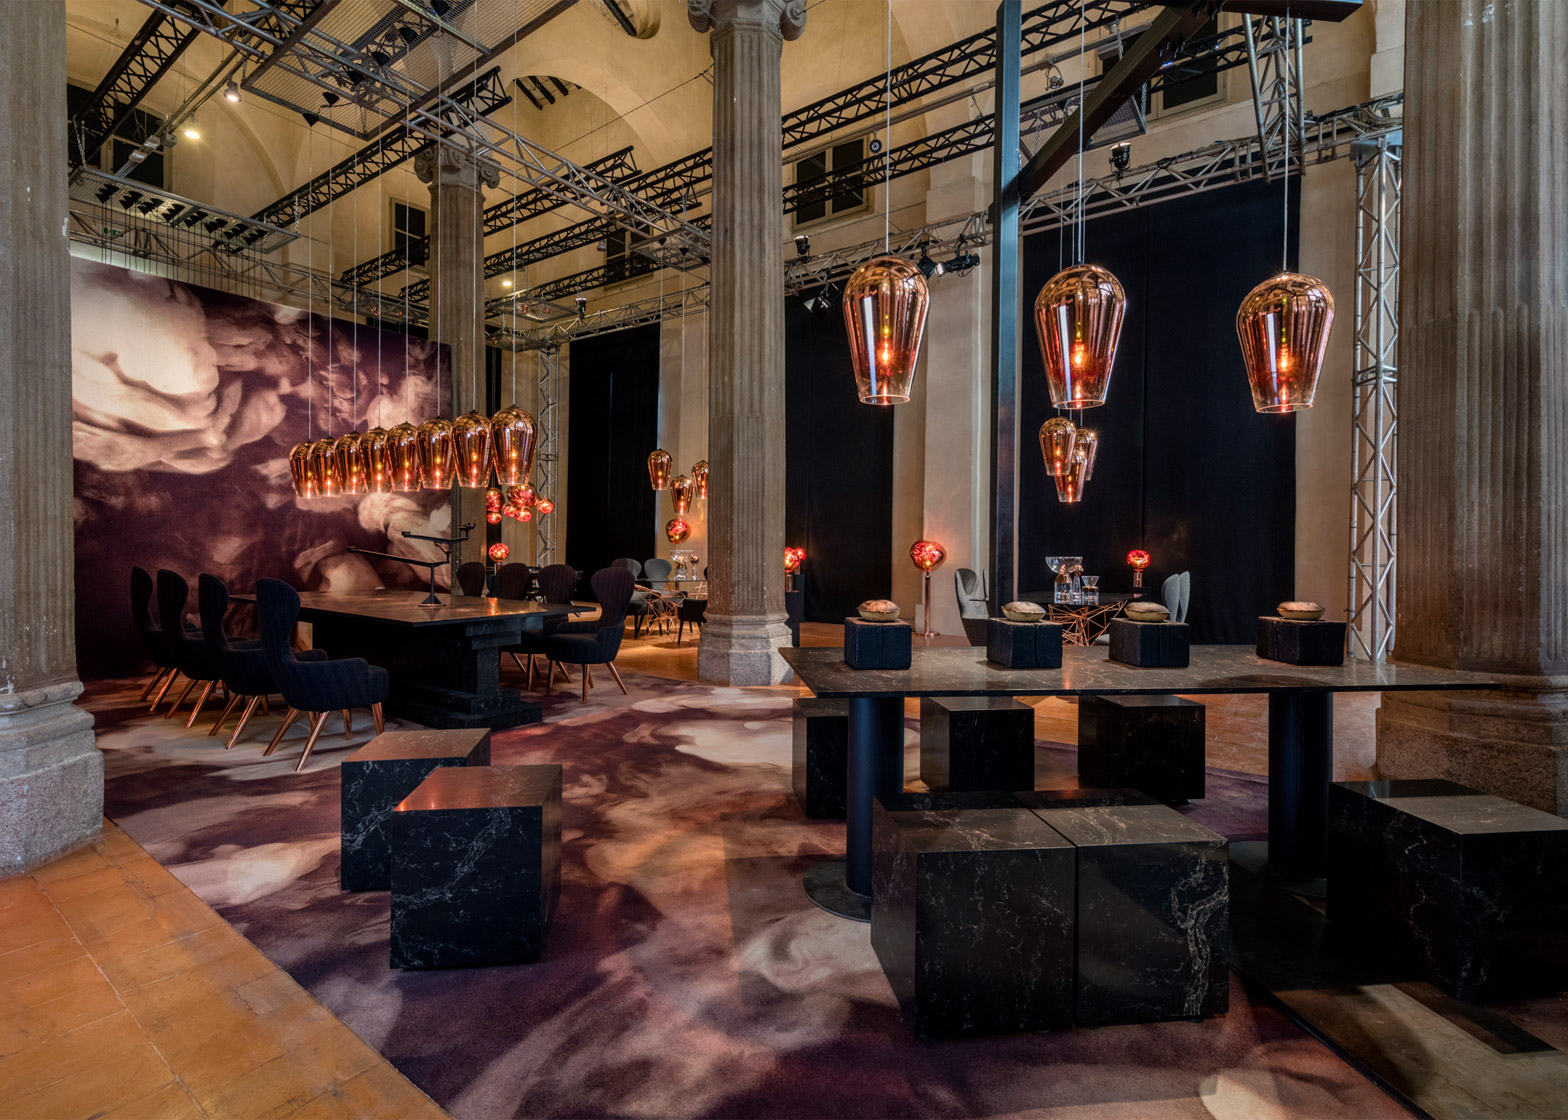 Find the Restaurant by Tom Dixon and Caesarstone things to do in milan Top 10 Things To Do in Milan cover4 things to do in milan Top 10 Things To Do in Milan cover4